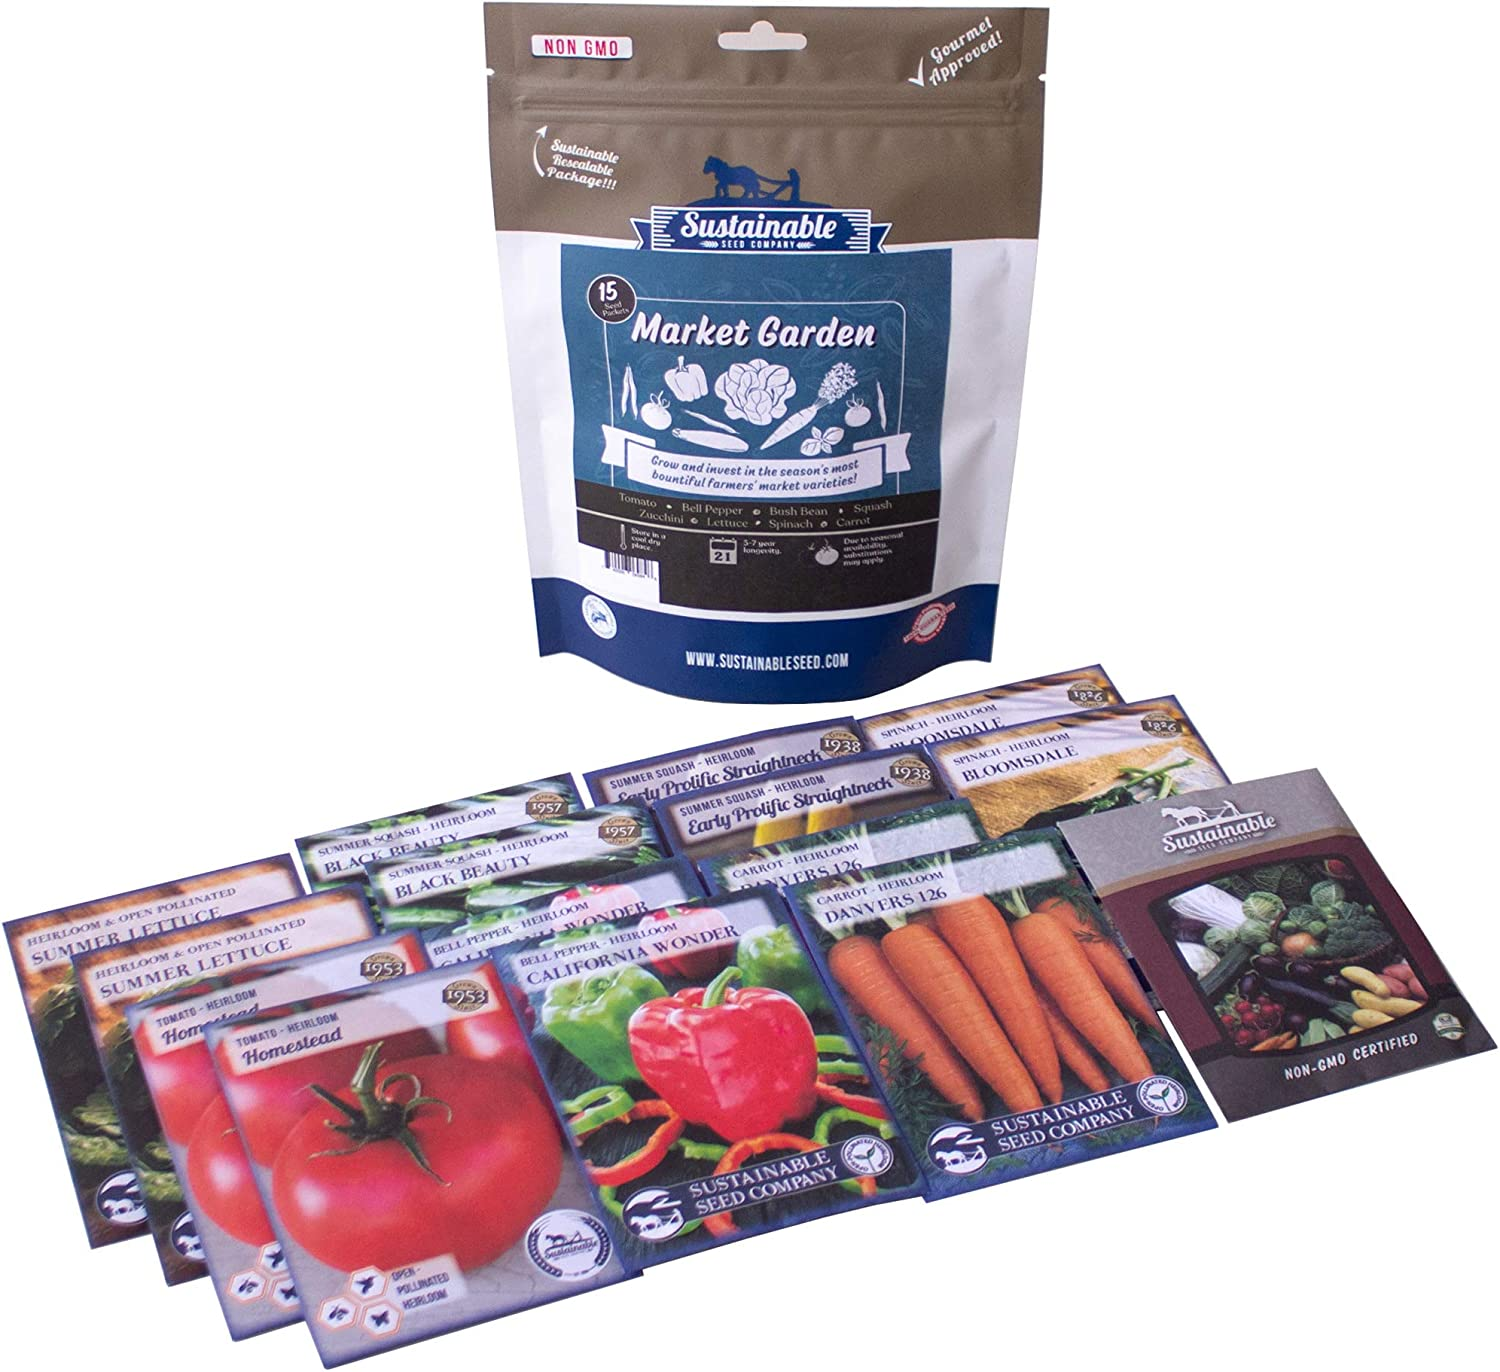 15-Pack Non-GMO Market Garden Heirloom Seed Collection - Homestead Tomato, Straightneck Squash, Contender Bush Bean, Danvers 126 Carrot, Bloomsdale Spinach, Summer Bibb Lettuce, Bell Pepper, Zucchini